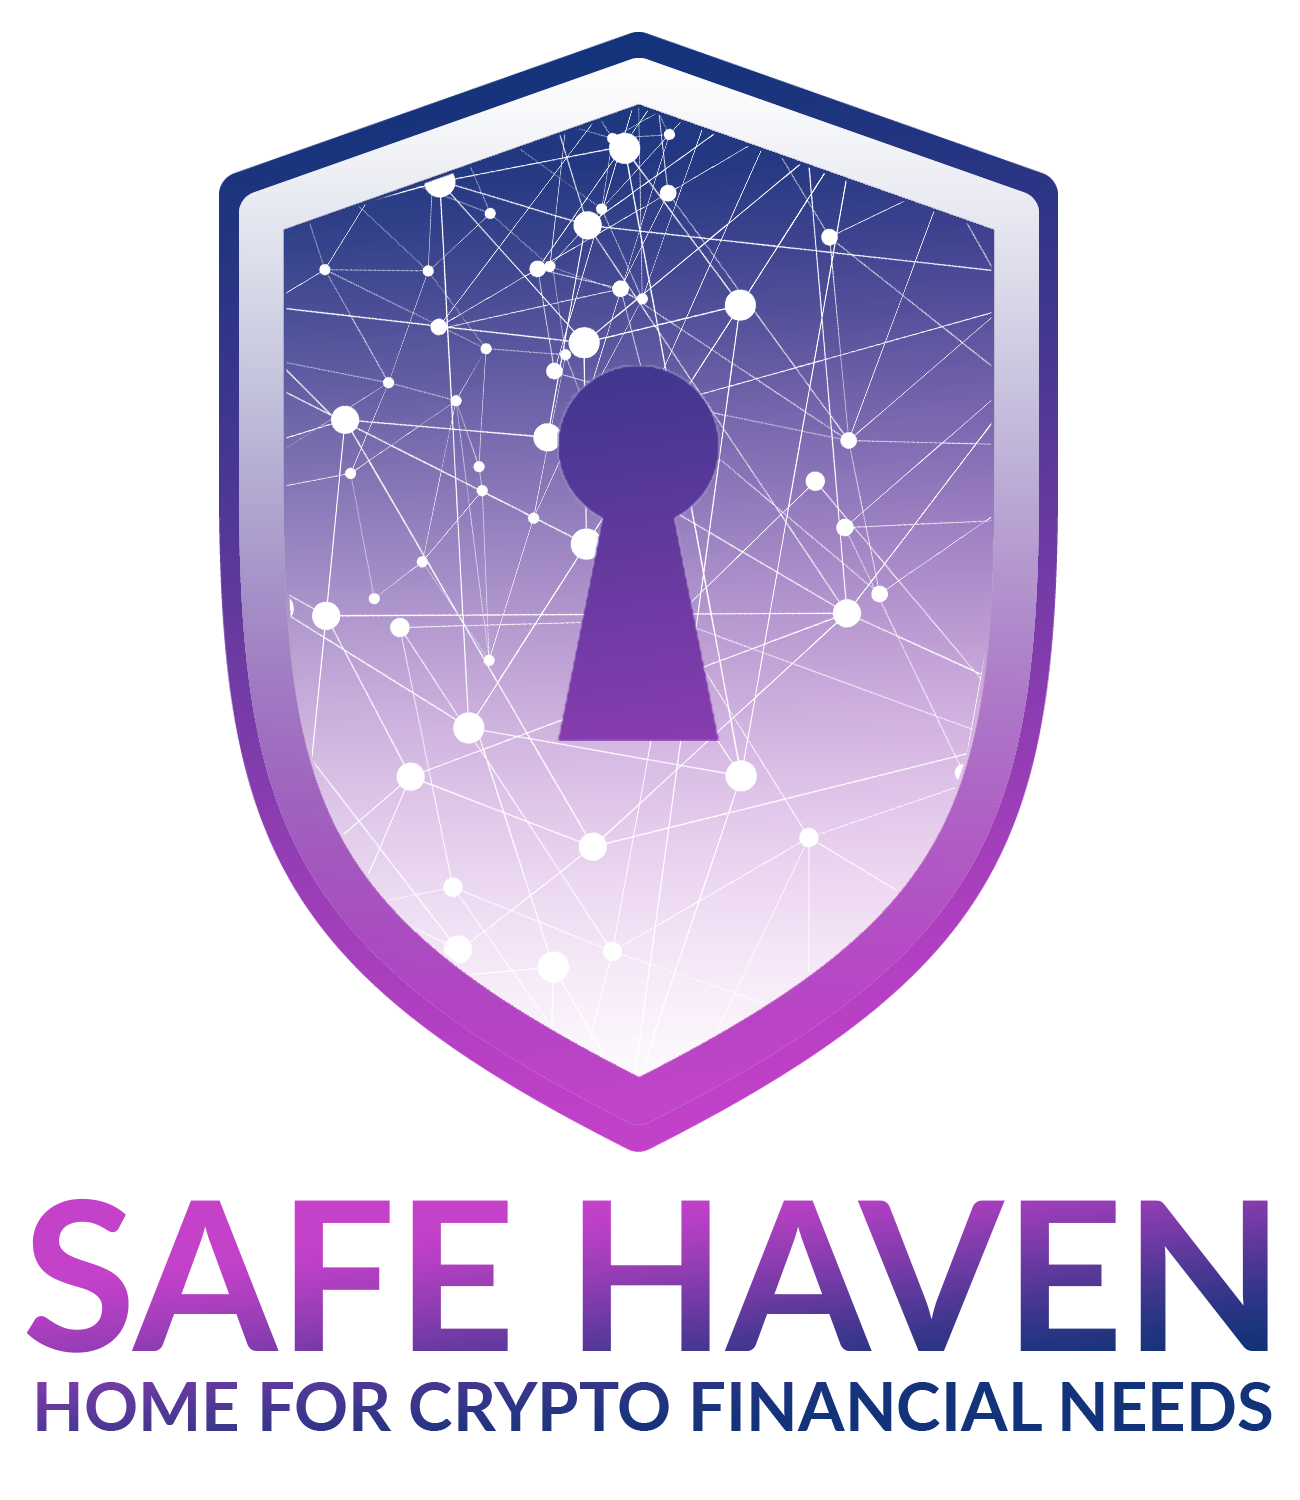 Safe Haven is a Decentralized platform which supports companies and blockchain projects. They open their platform and tech solutions to developers, entrepreneurs and trust professionals.